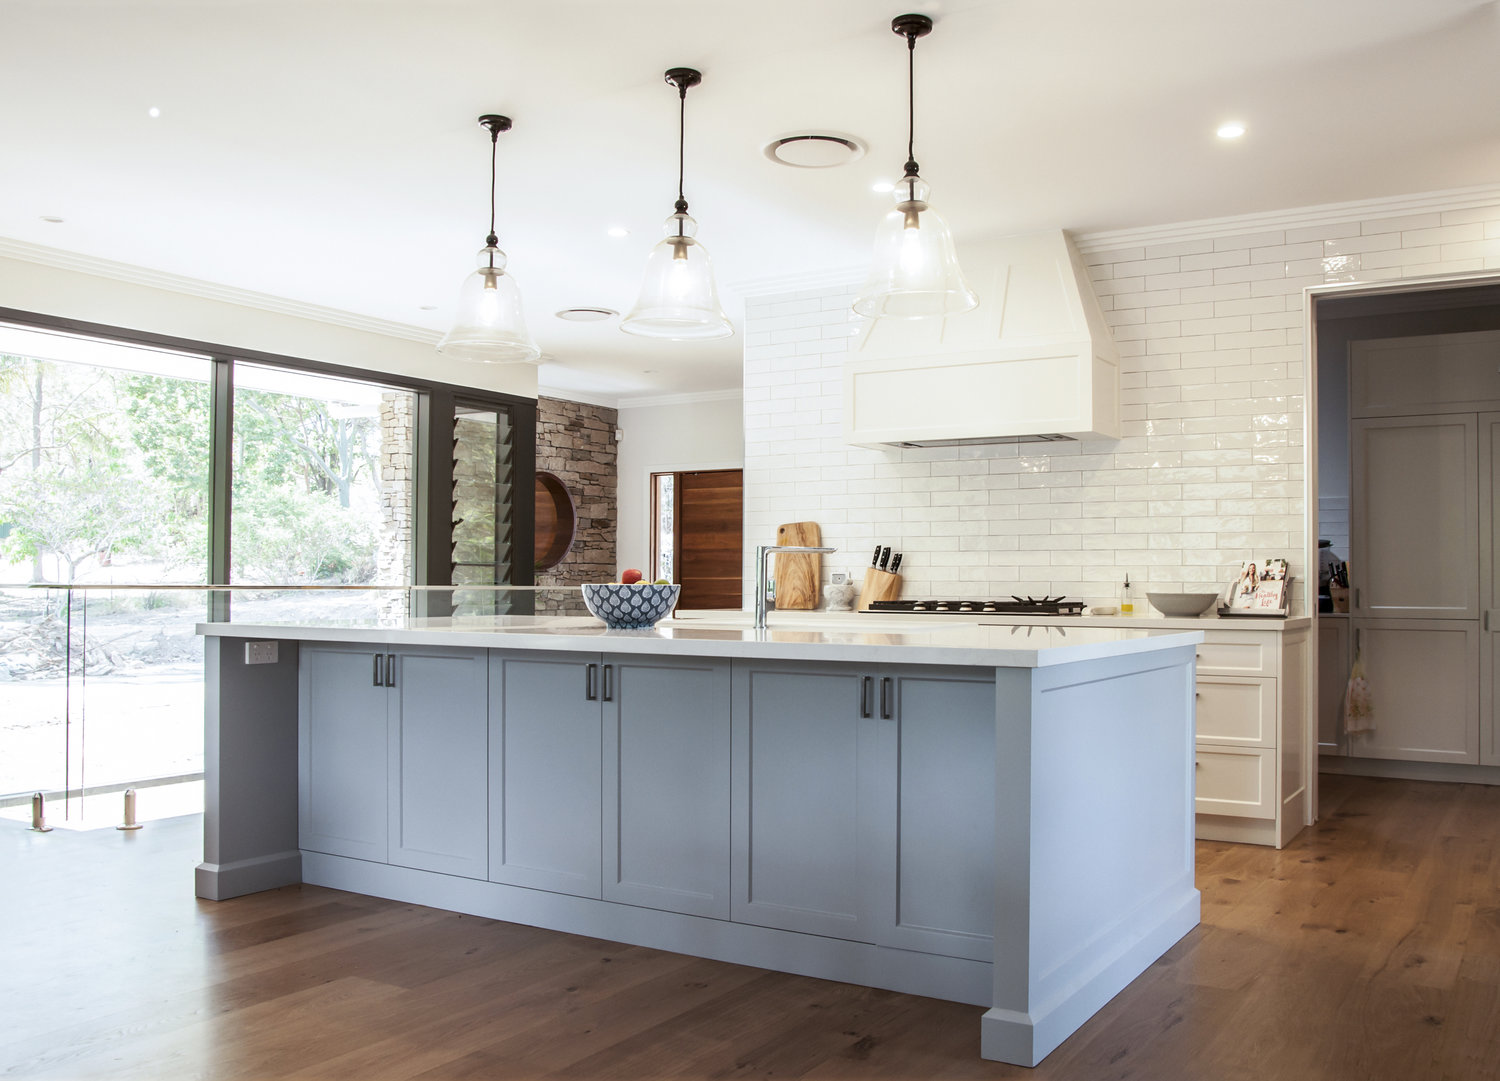 style kitchens by design. Burbank  Style Kitchens by Design